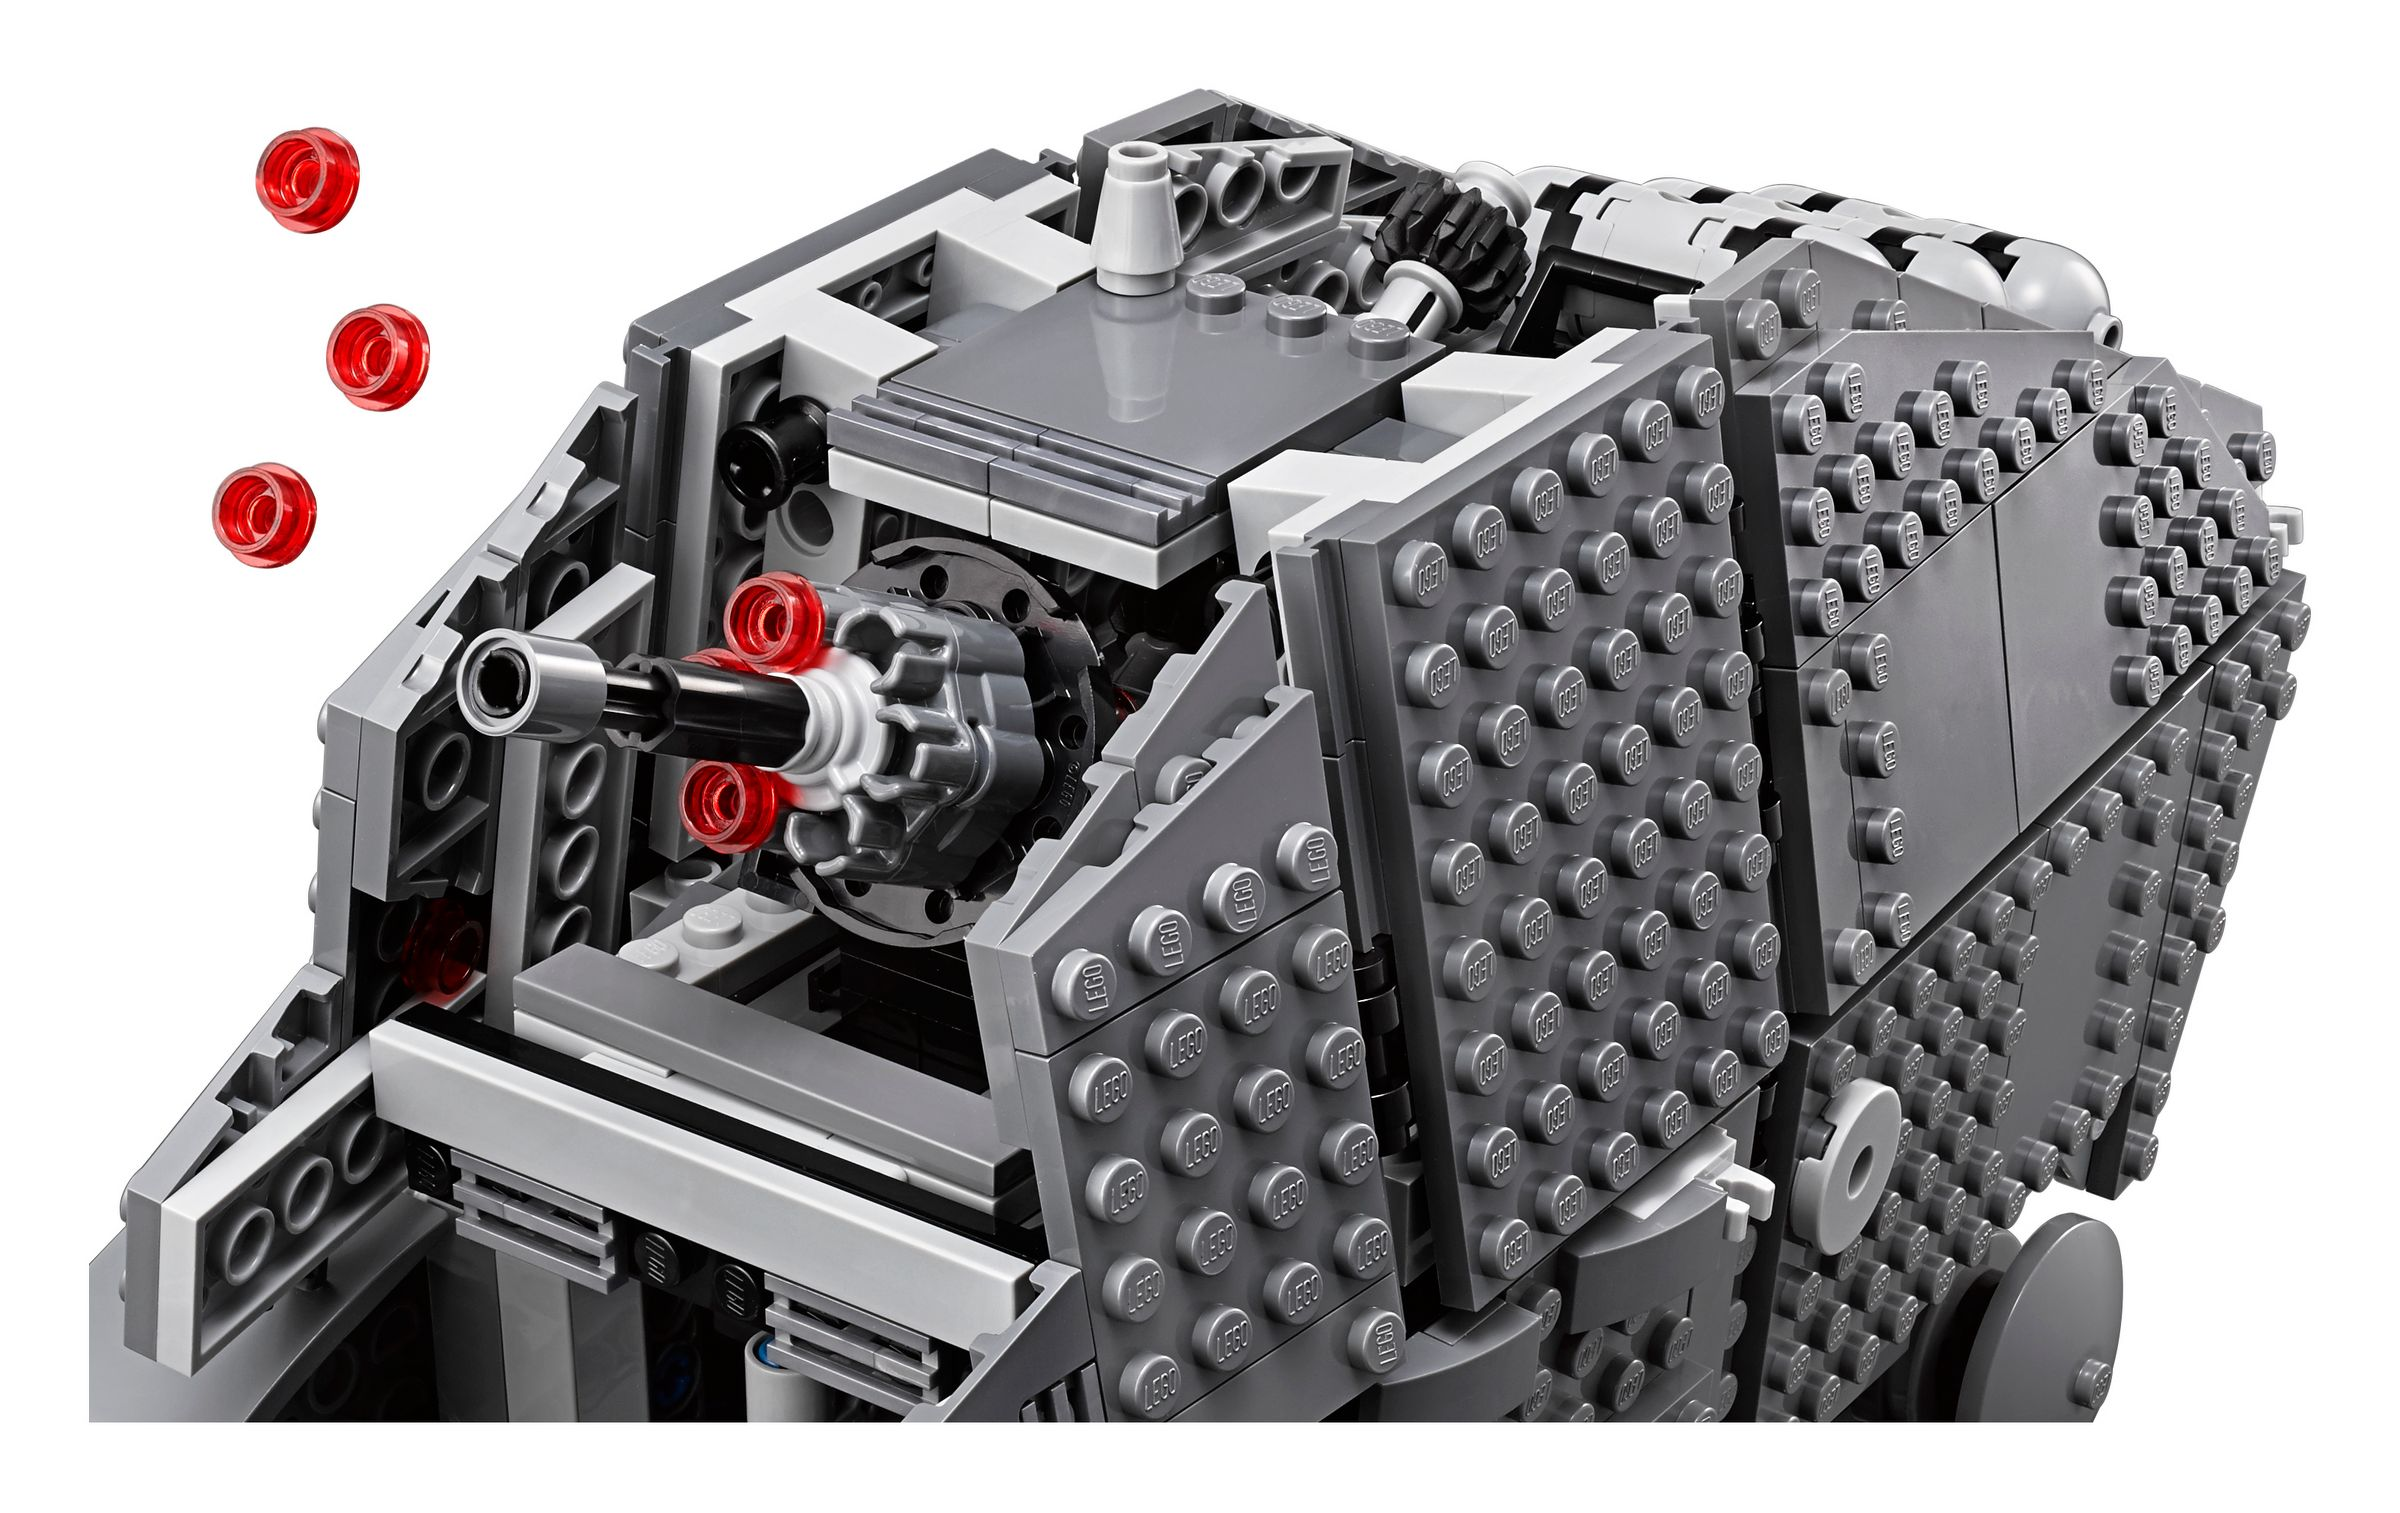 LEGO Star Wars 75189 First Order Heavy Assault Walker™ LEGO_75189_alt4.jpg